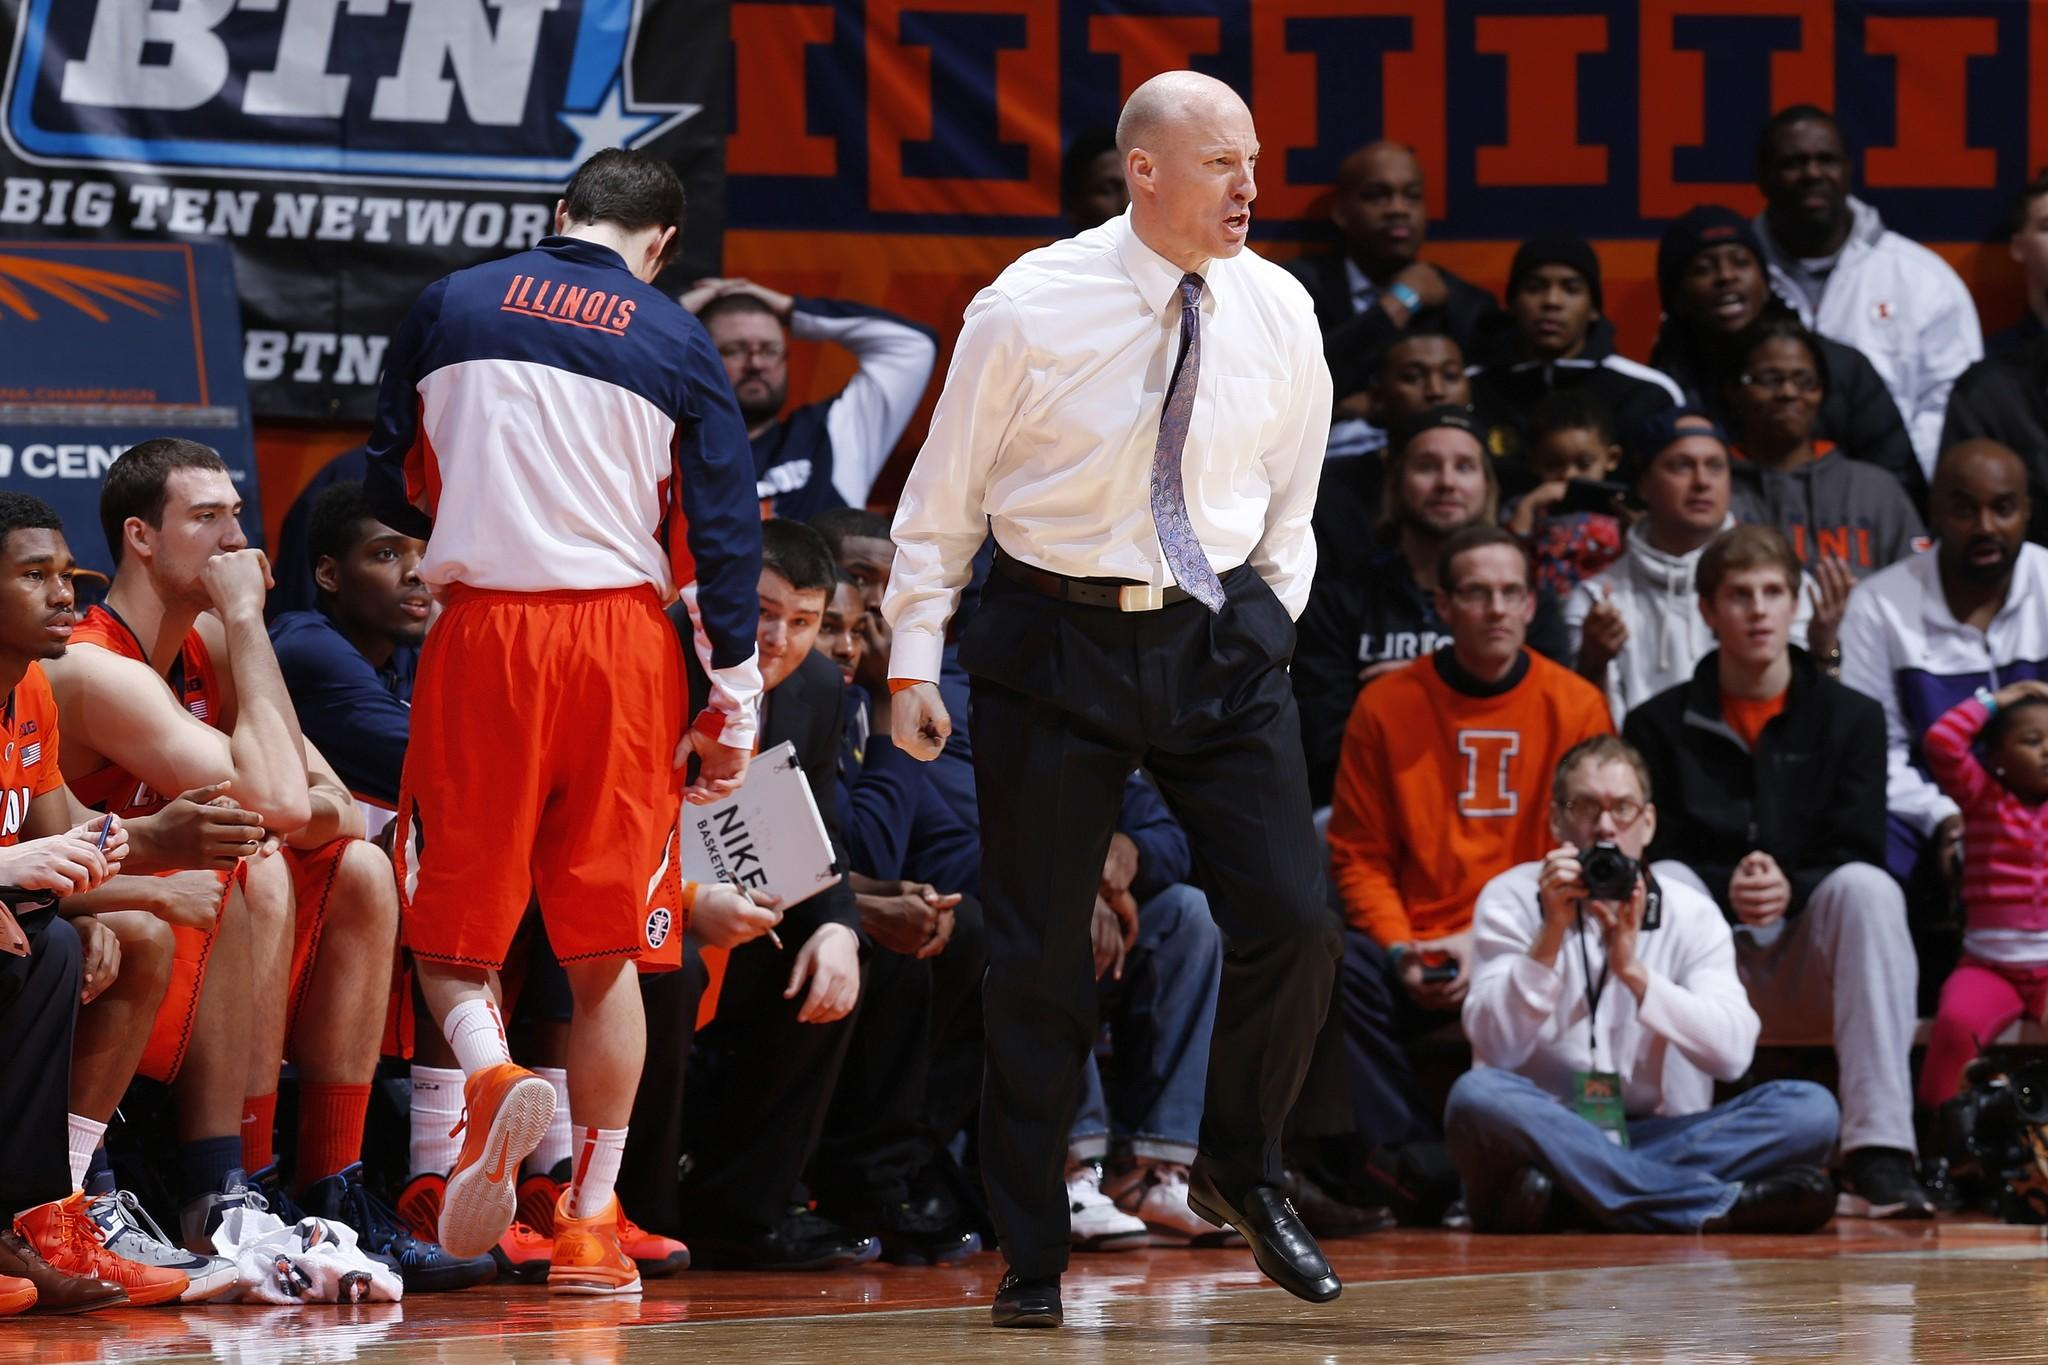 Head coach John Groce of the Illinois Fighting Illini reacts during the game against the Michigan State Spartans at State Farm Center on January 18, 2014 in Champaign, Illinois. Michigan State won the game 78-62.